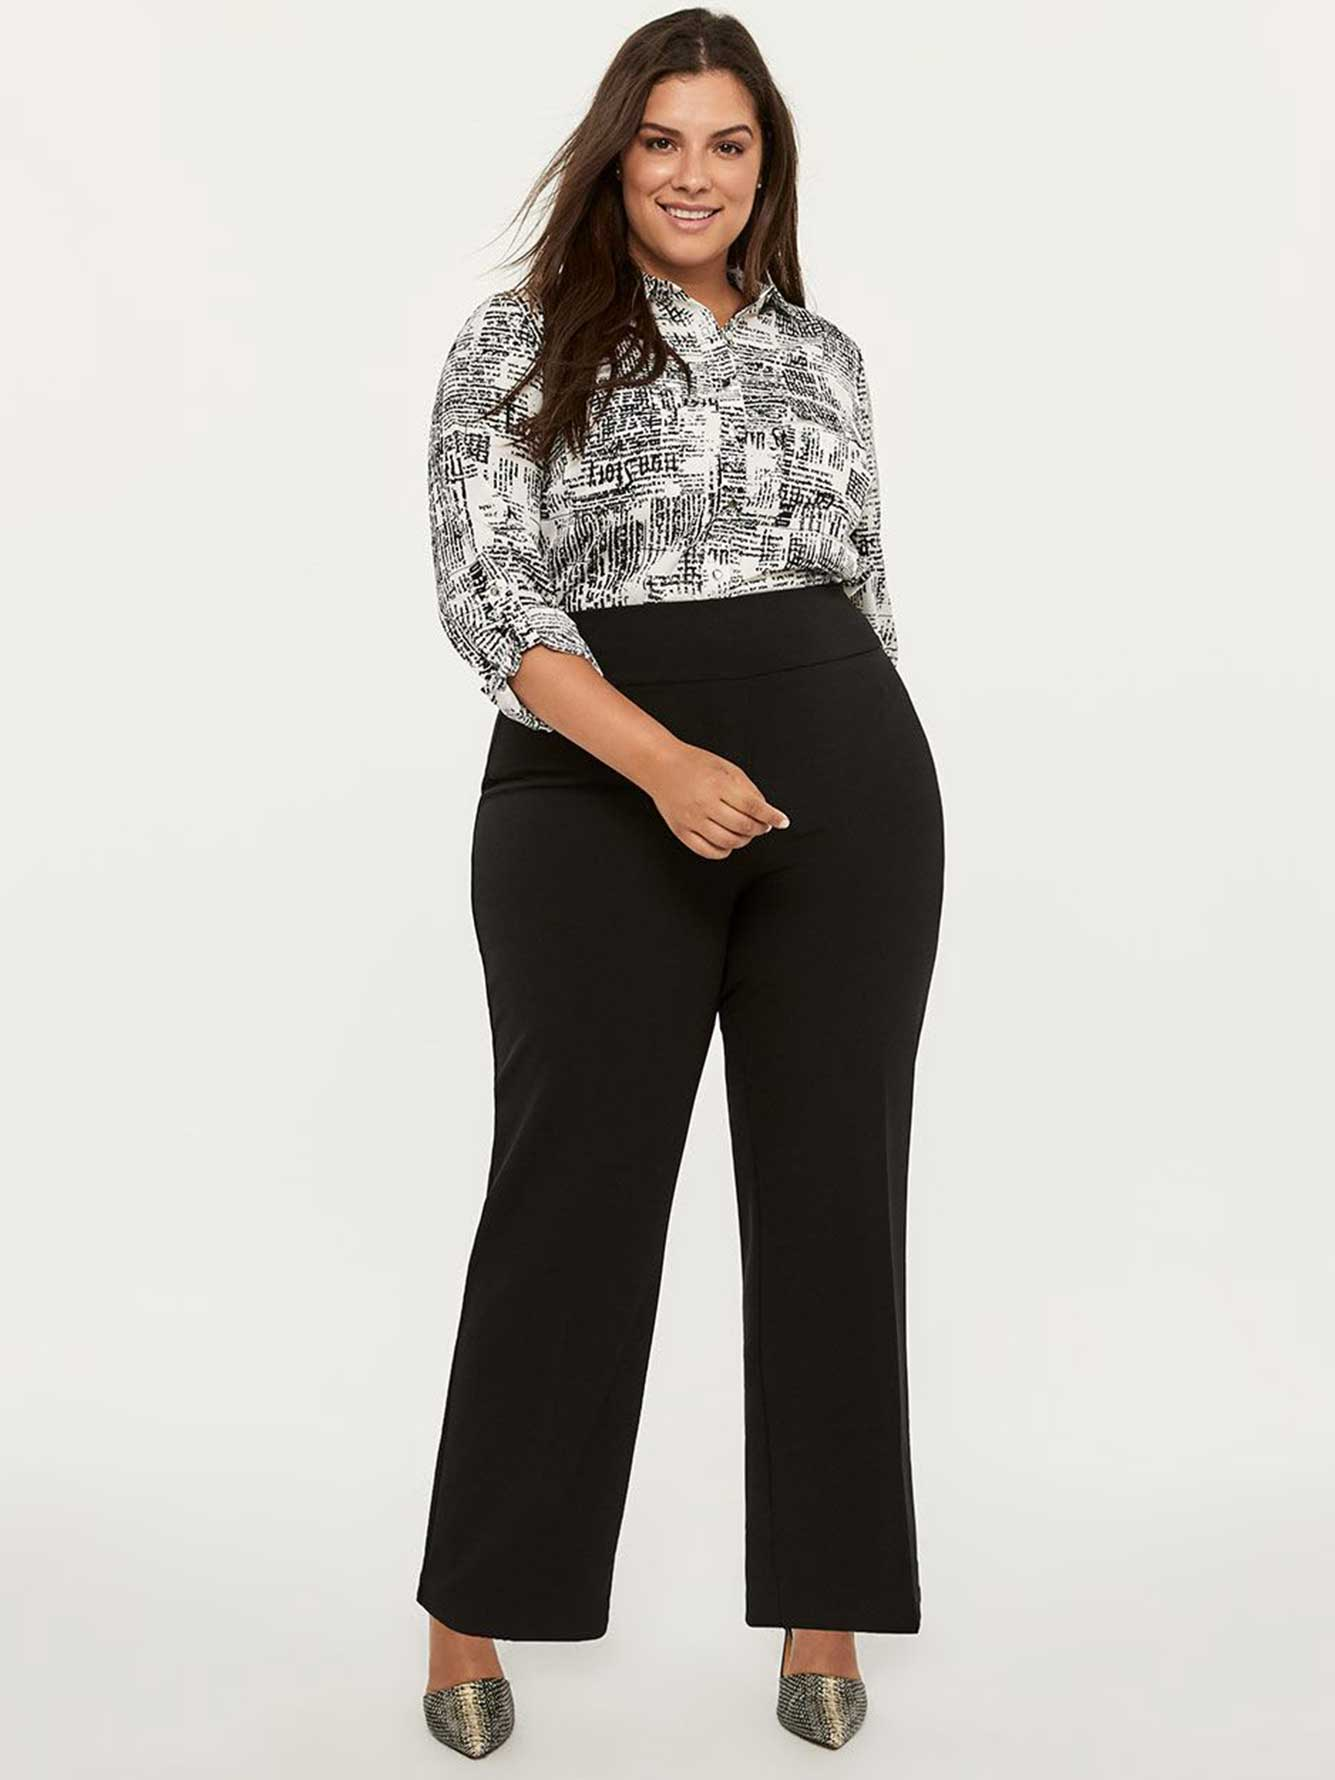 944b03dc2a Savvy Universal Fit Wide Leg Pull-On Pant - In Every Story | Penningtons